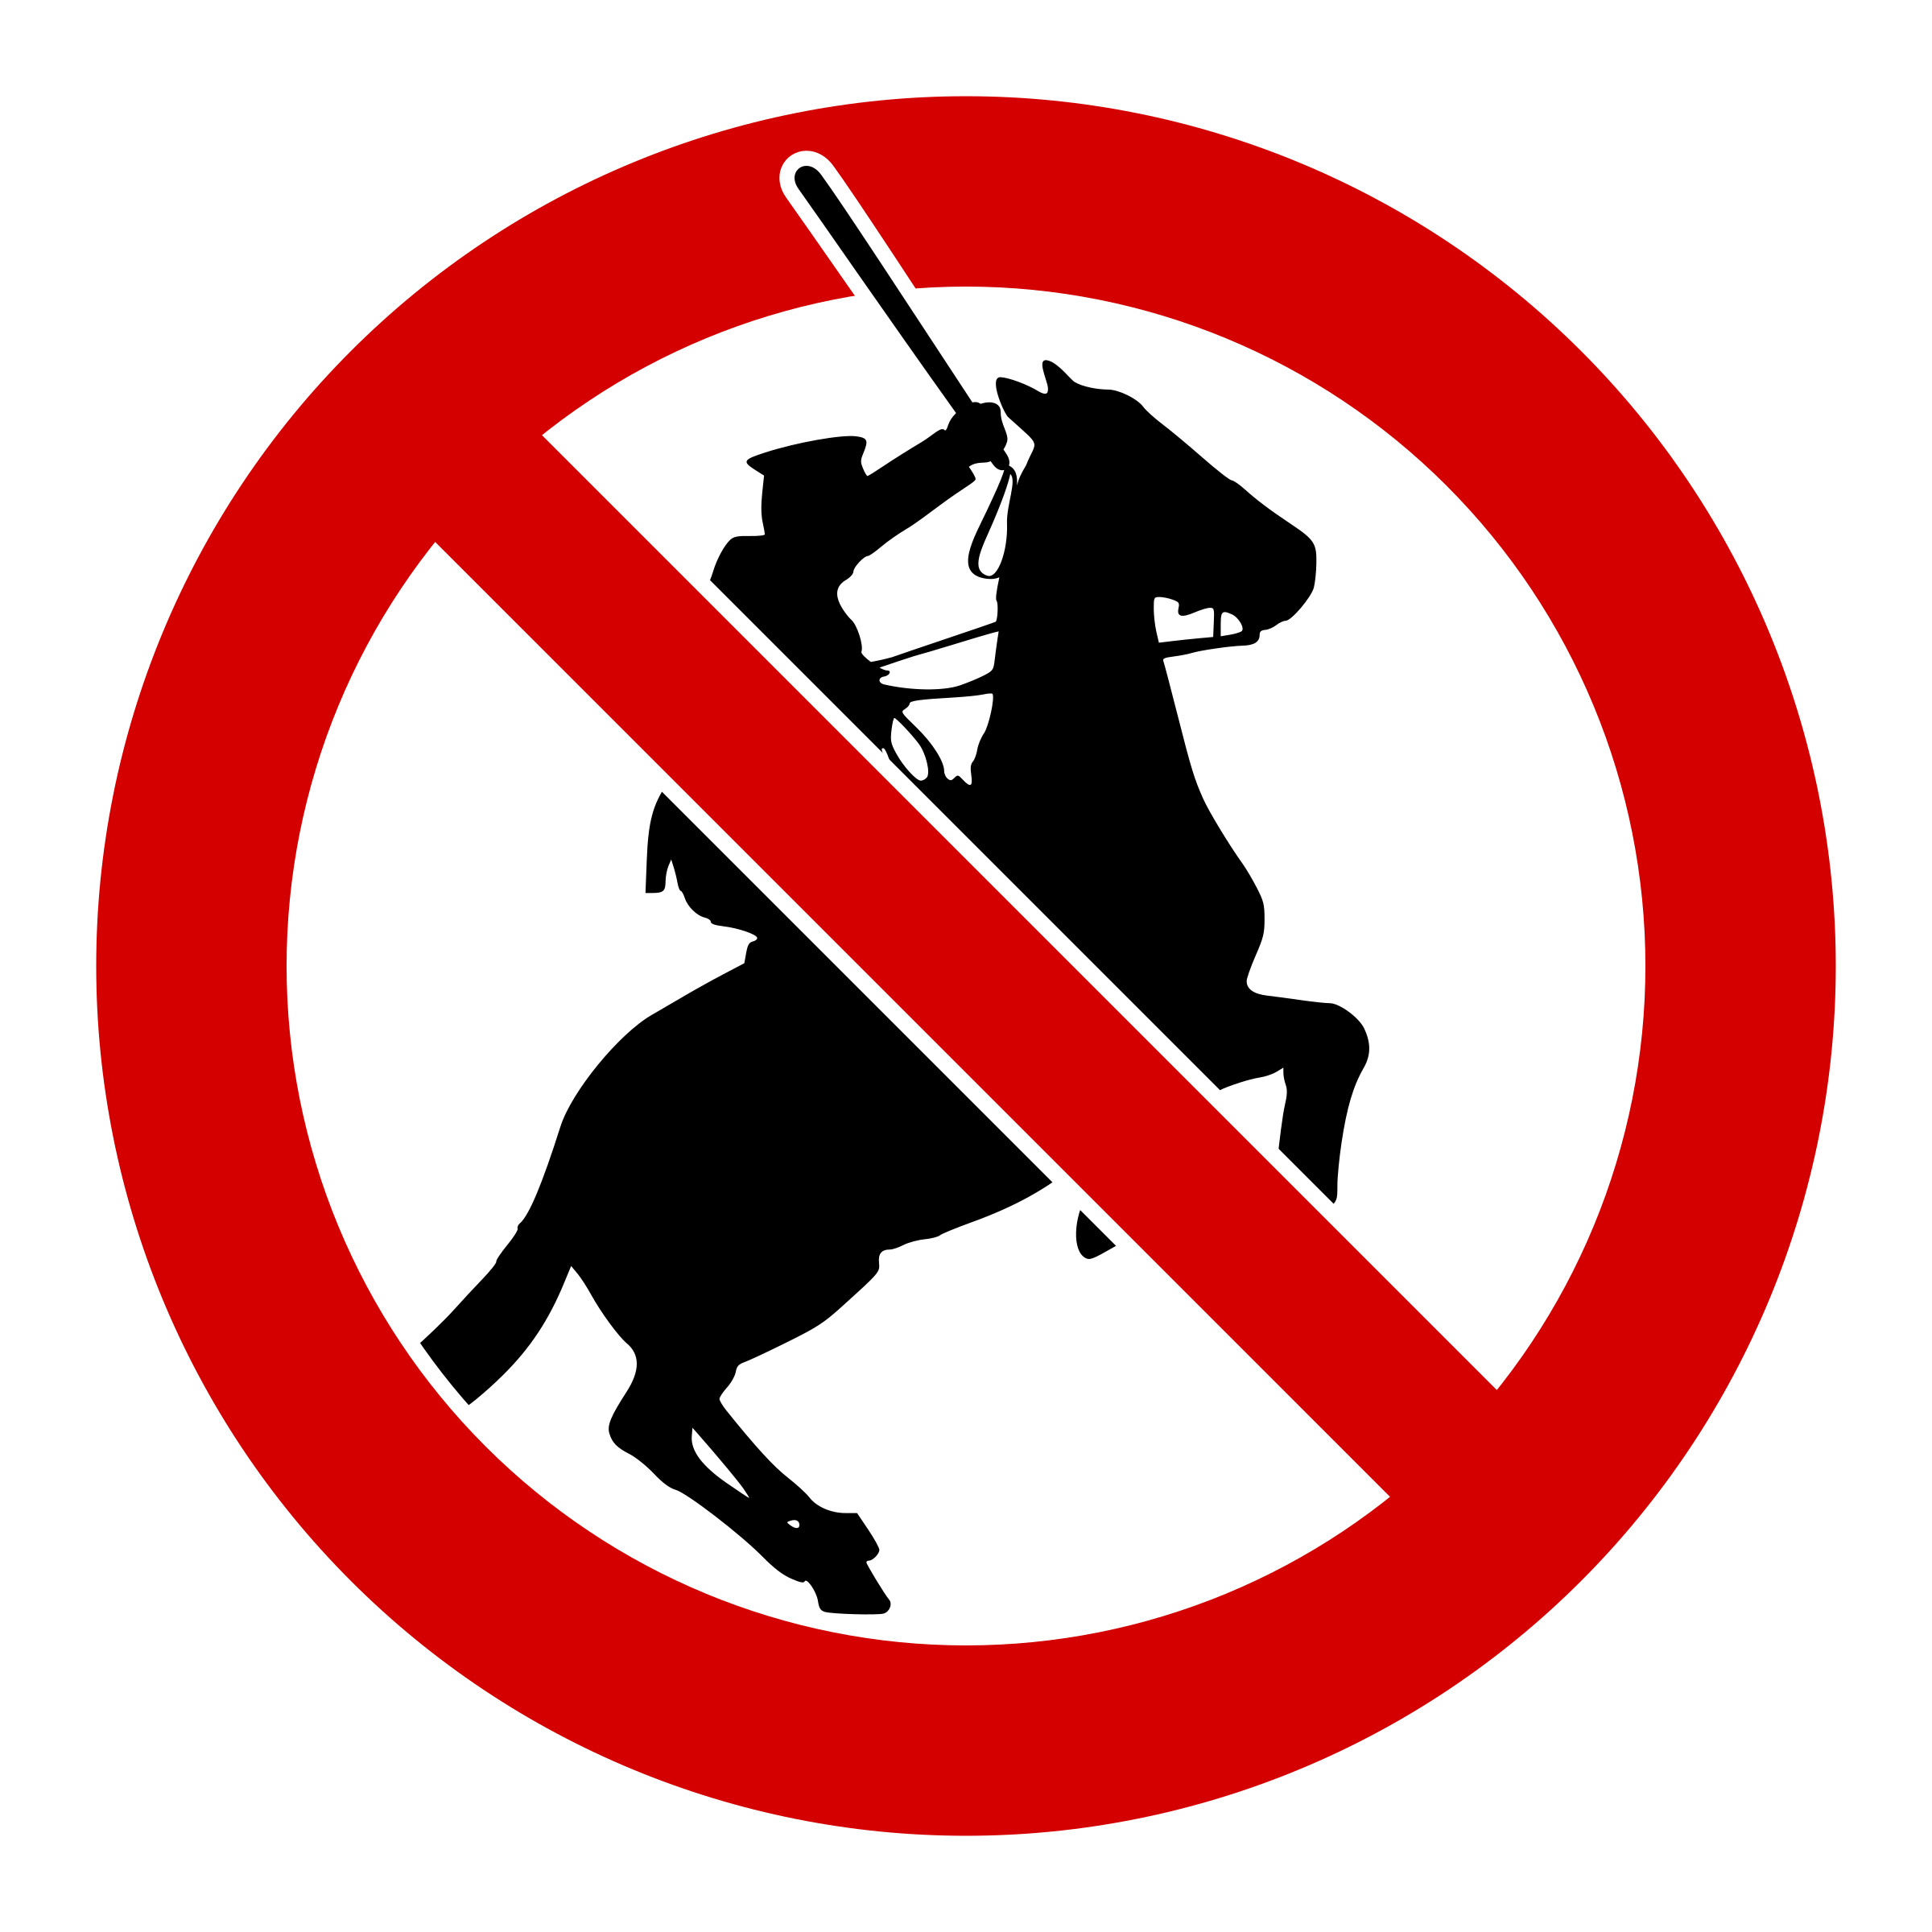 Cross batons clipart clipart freeuse library Clipart - No police on horses! clipart freeuse library